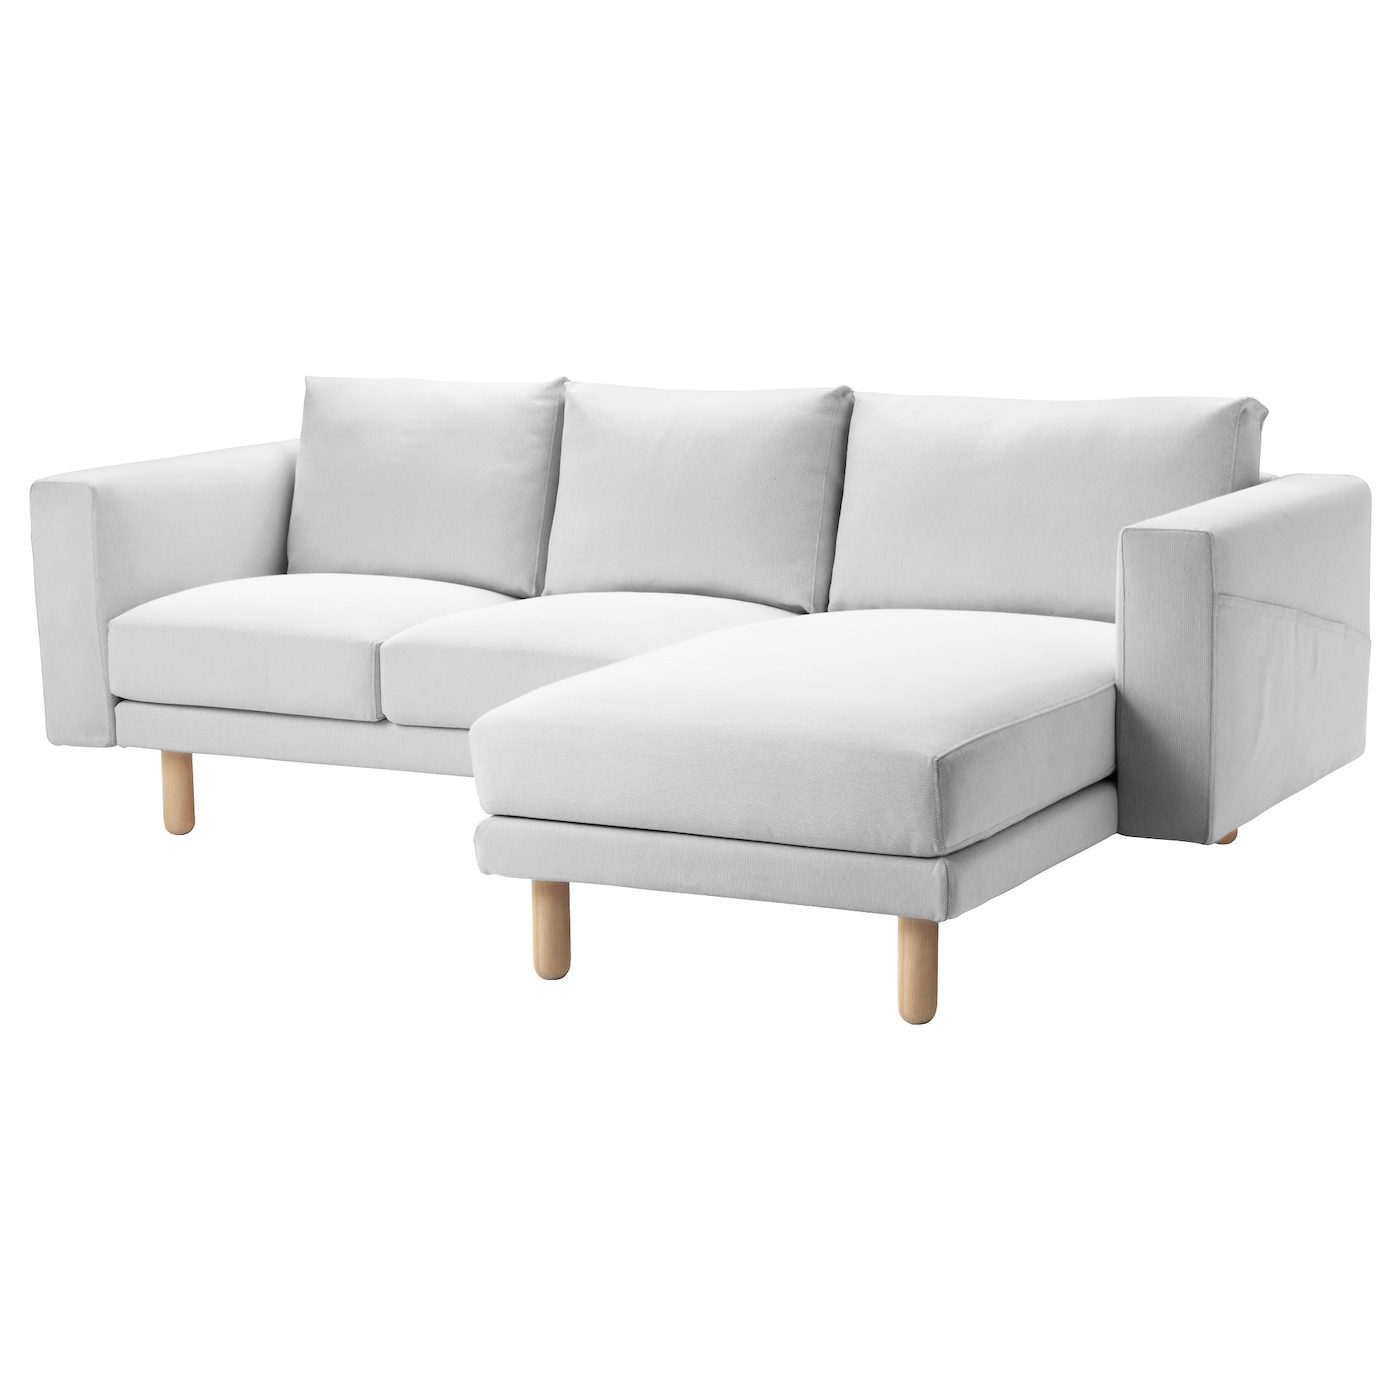 Norsborg two seat sofa with chaise longue finnsta white for 2 seater lounge with chaise